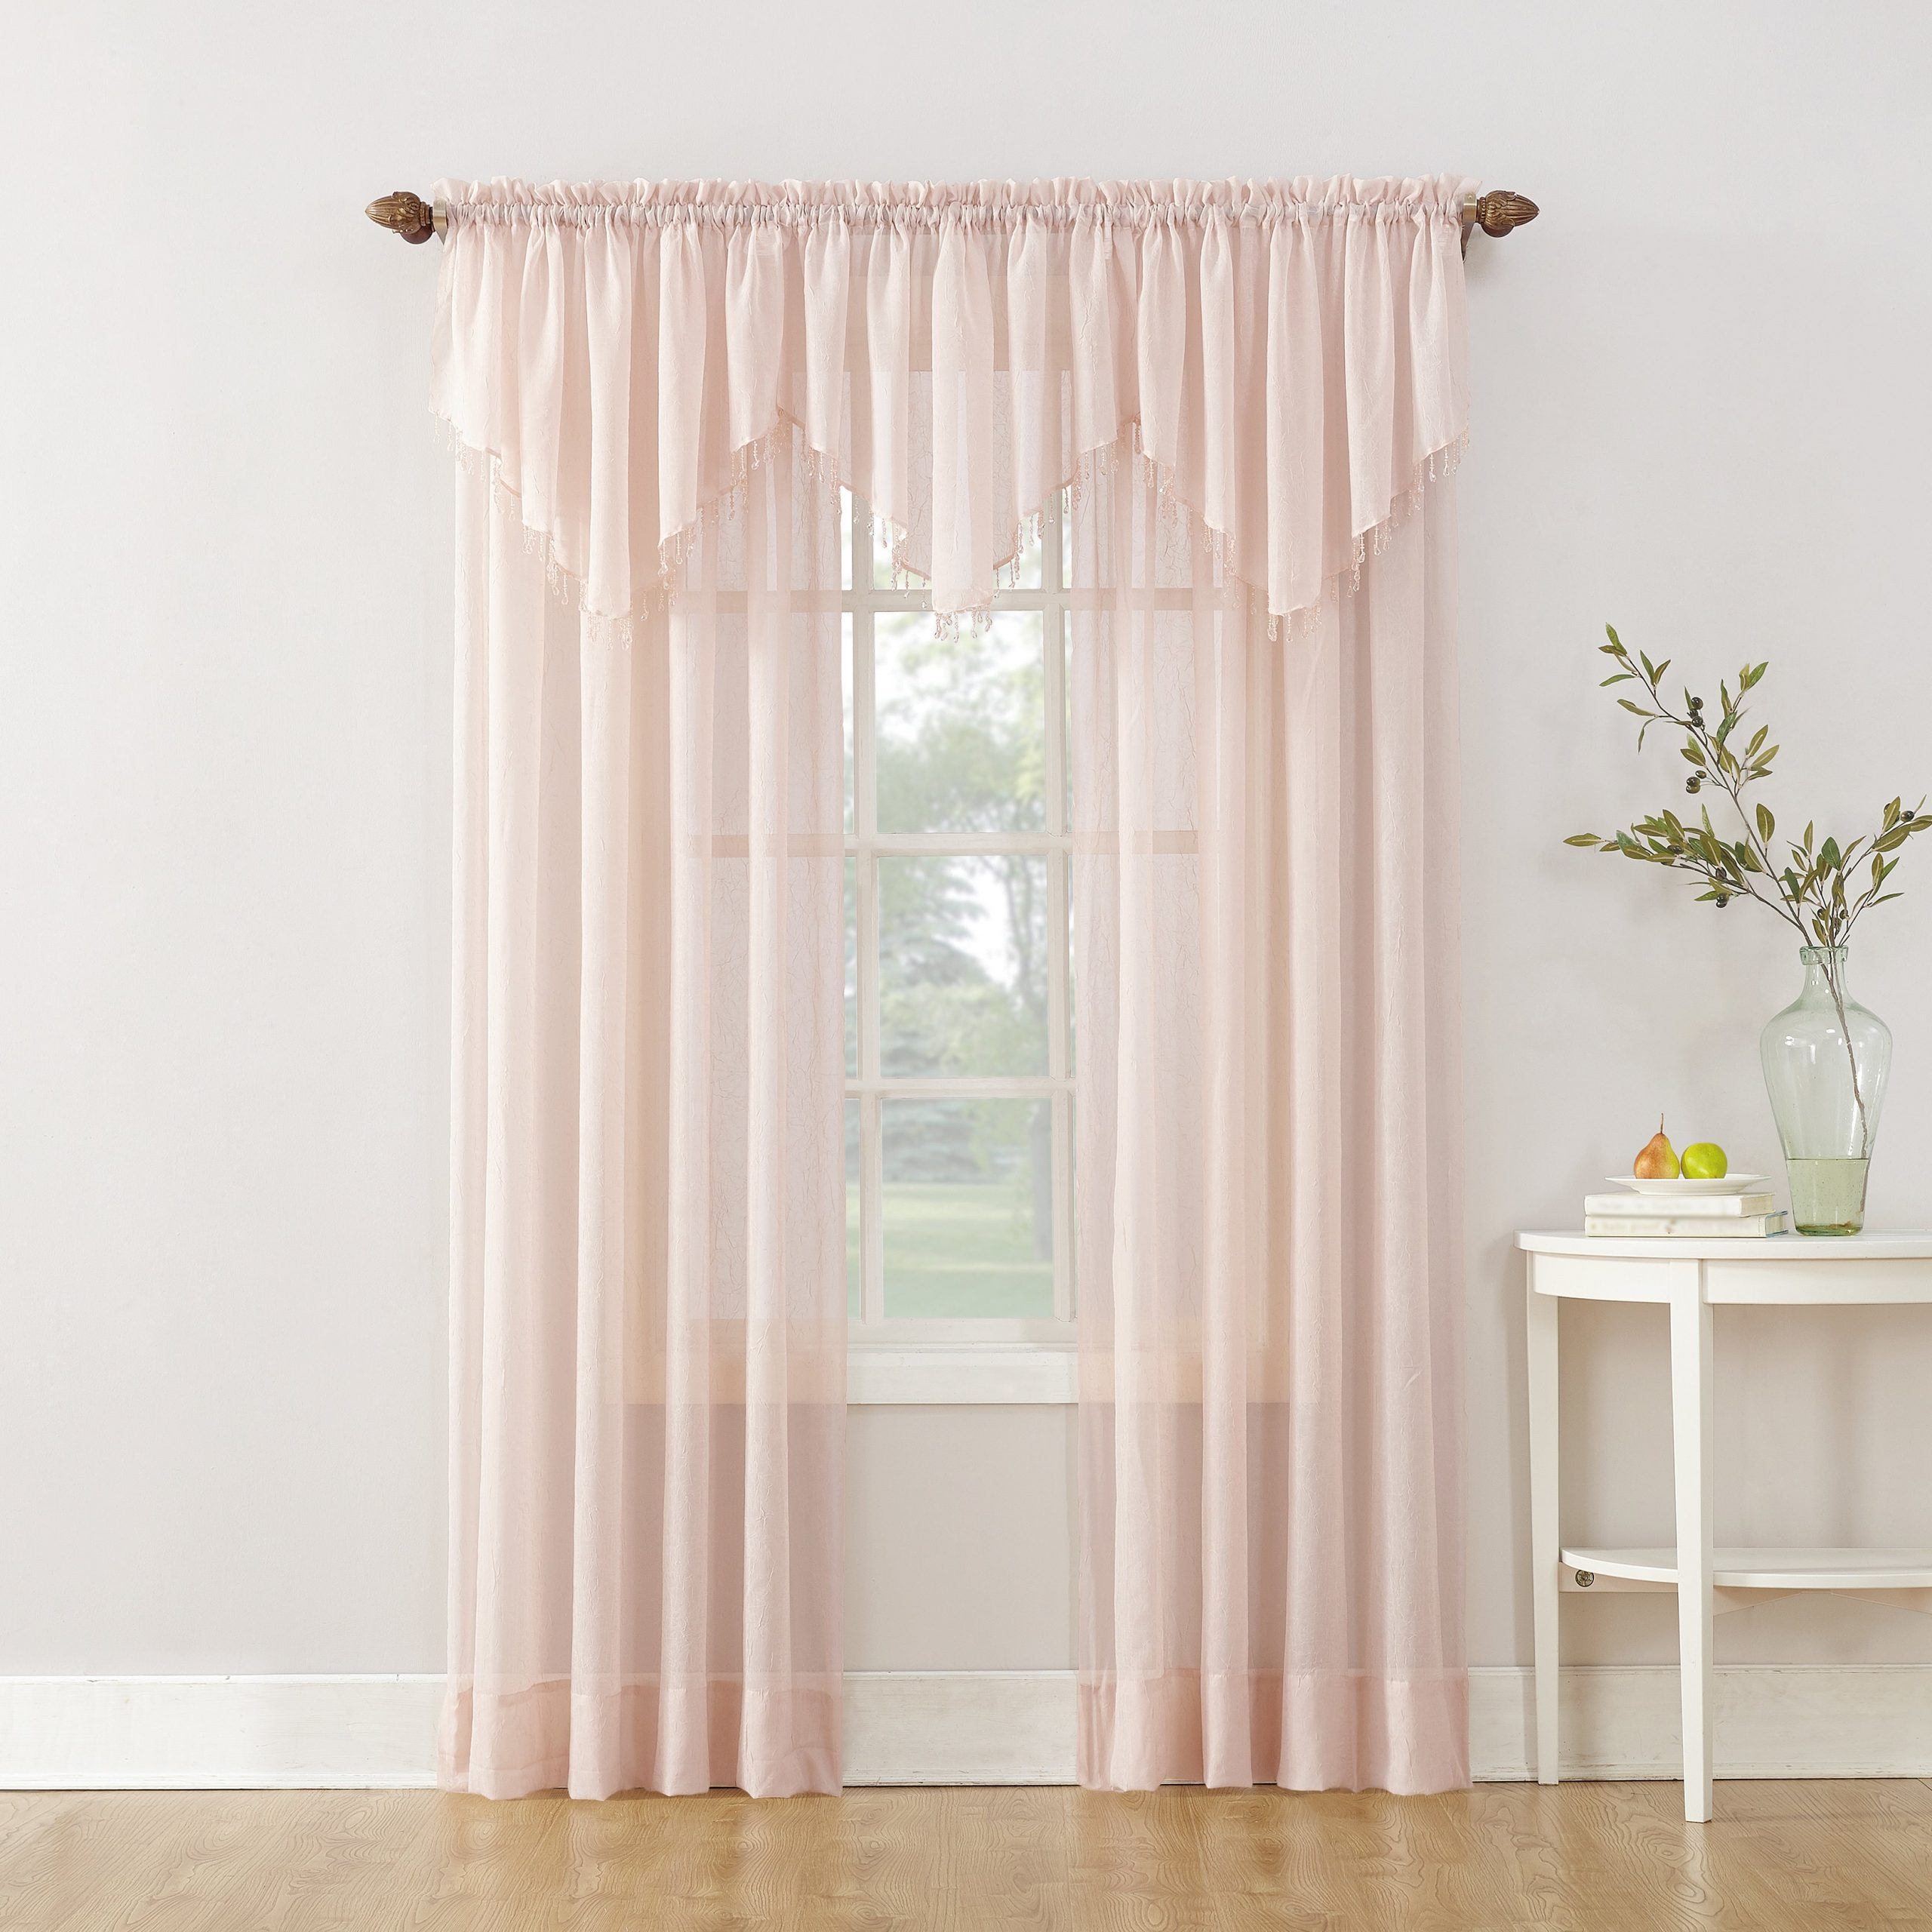 Use a Gauze Curtain with a Delicate Style